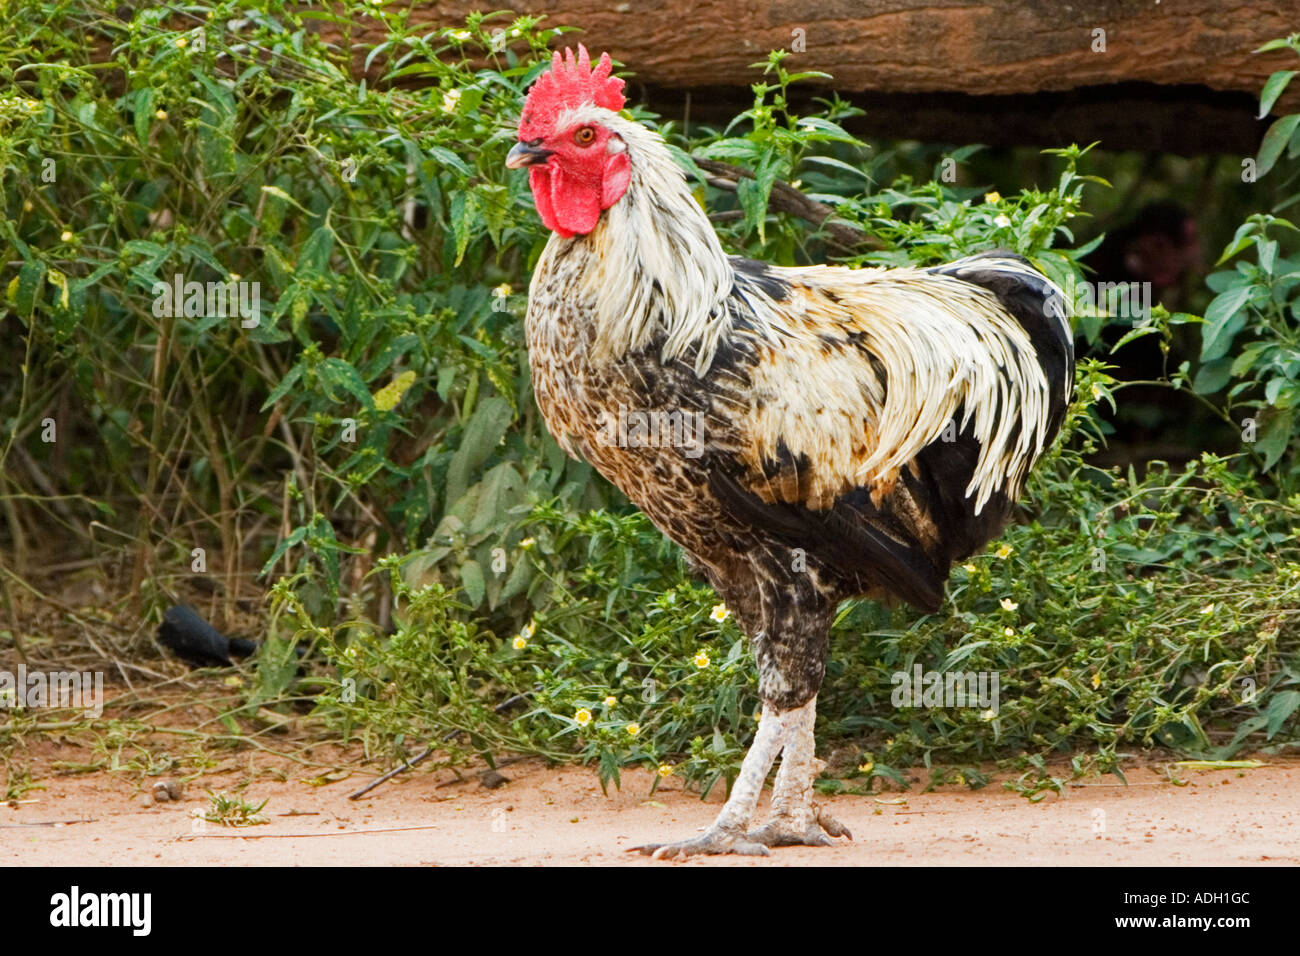 African cock picture